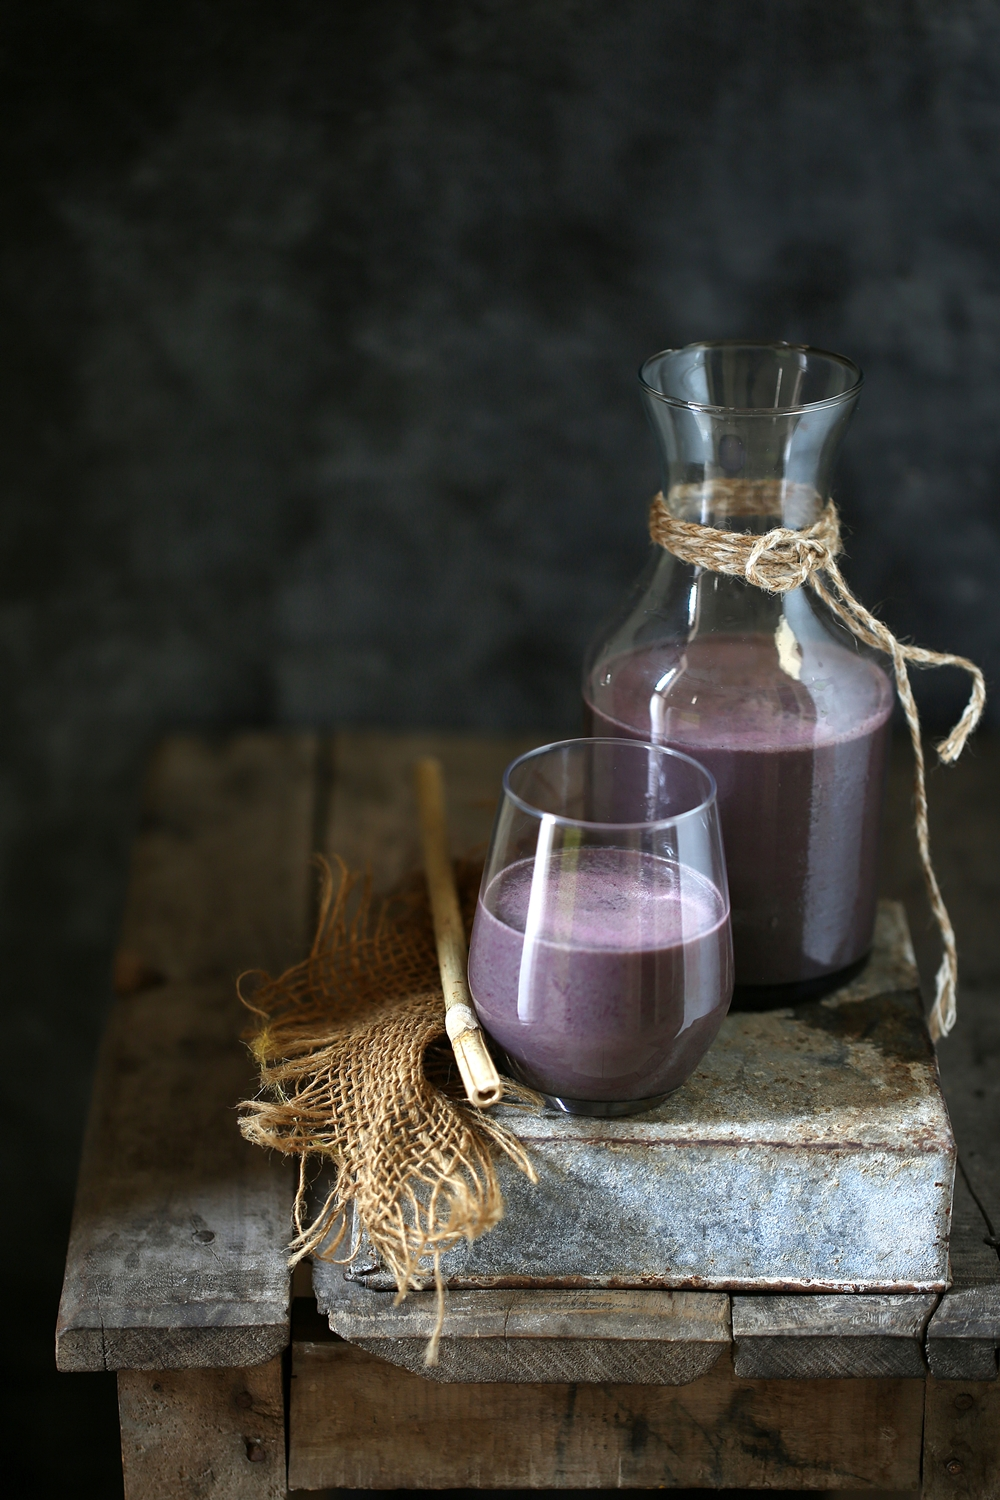 Beetroot spirulina buttermilk lassi